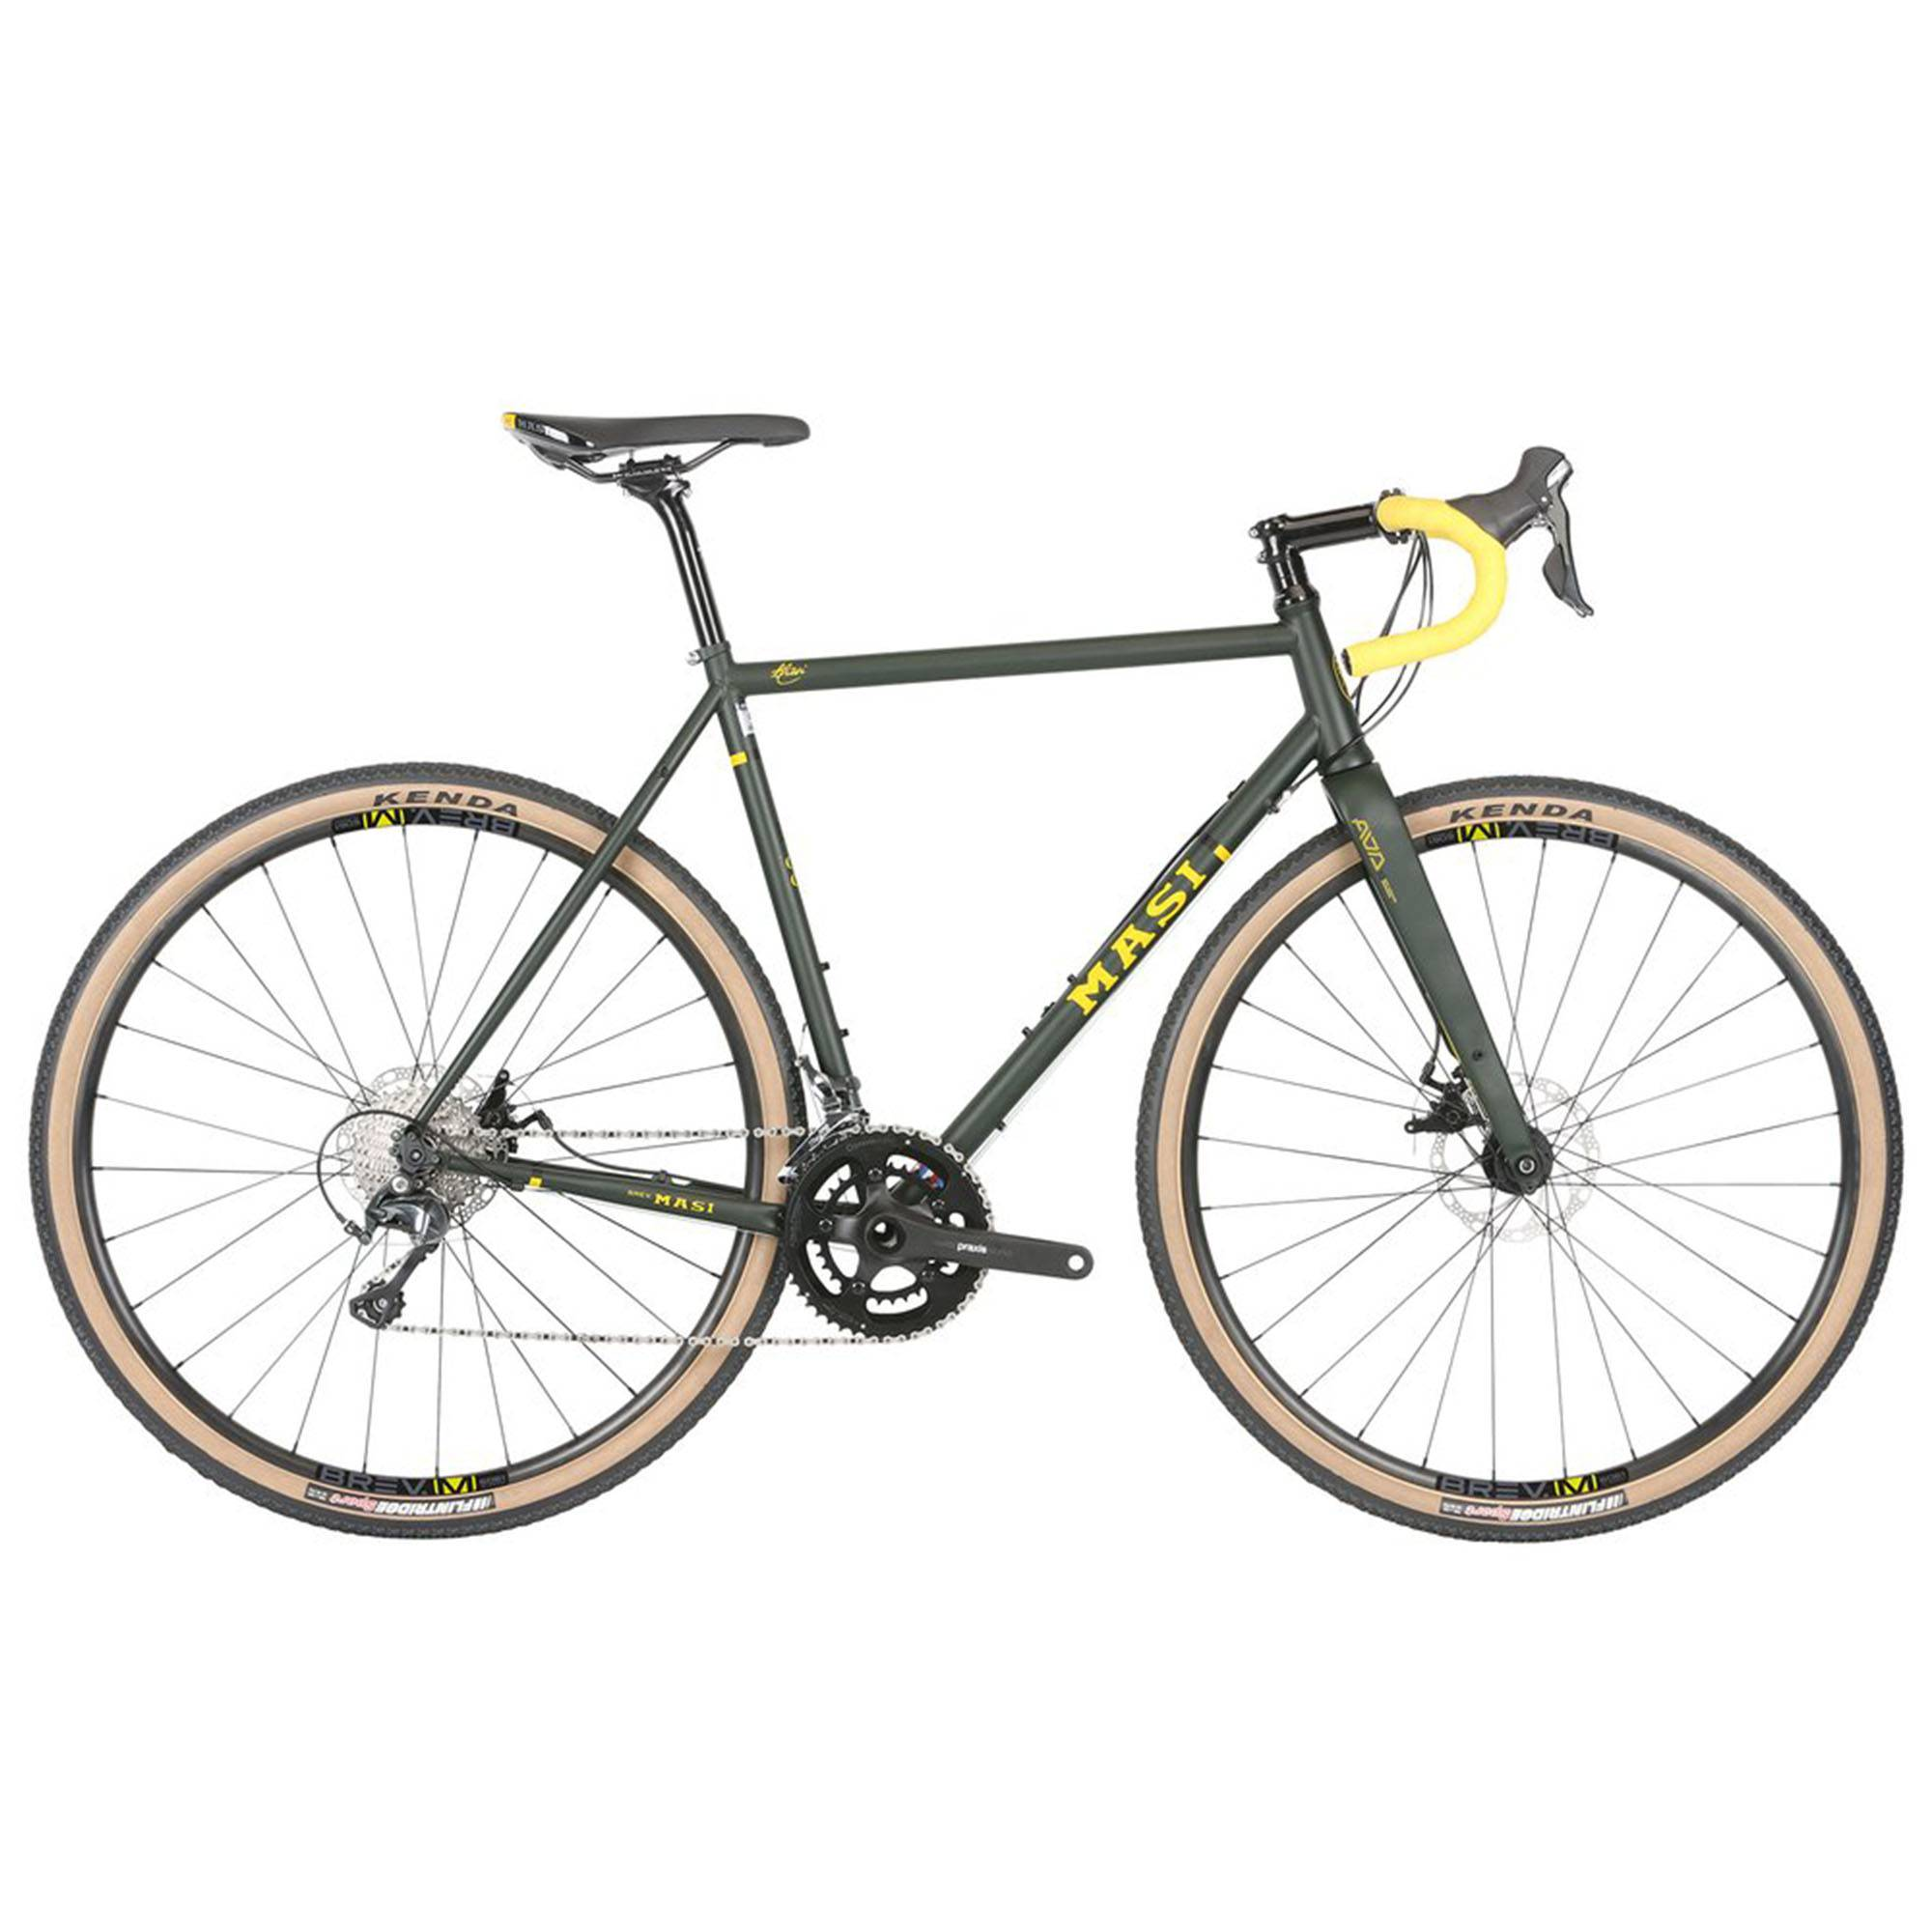 Masi CXGR Expert Gravel Bike '20  - Green - Size: 58